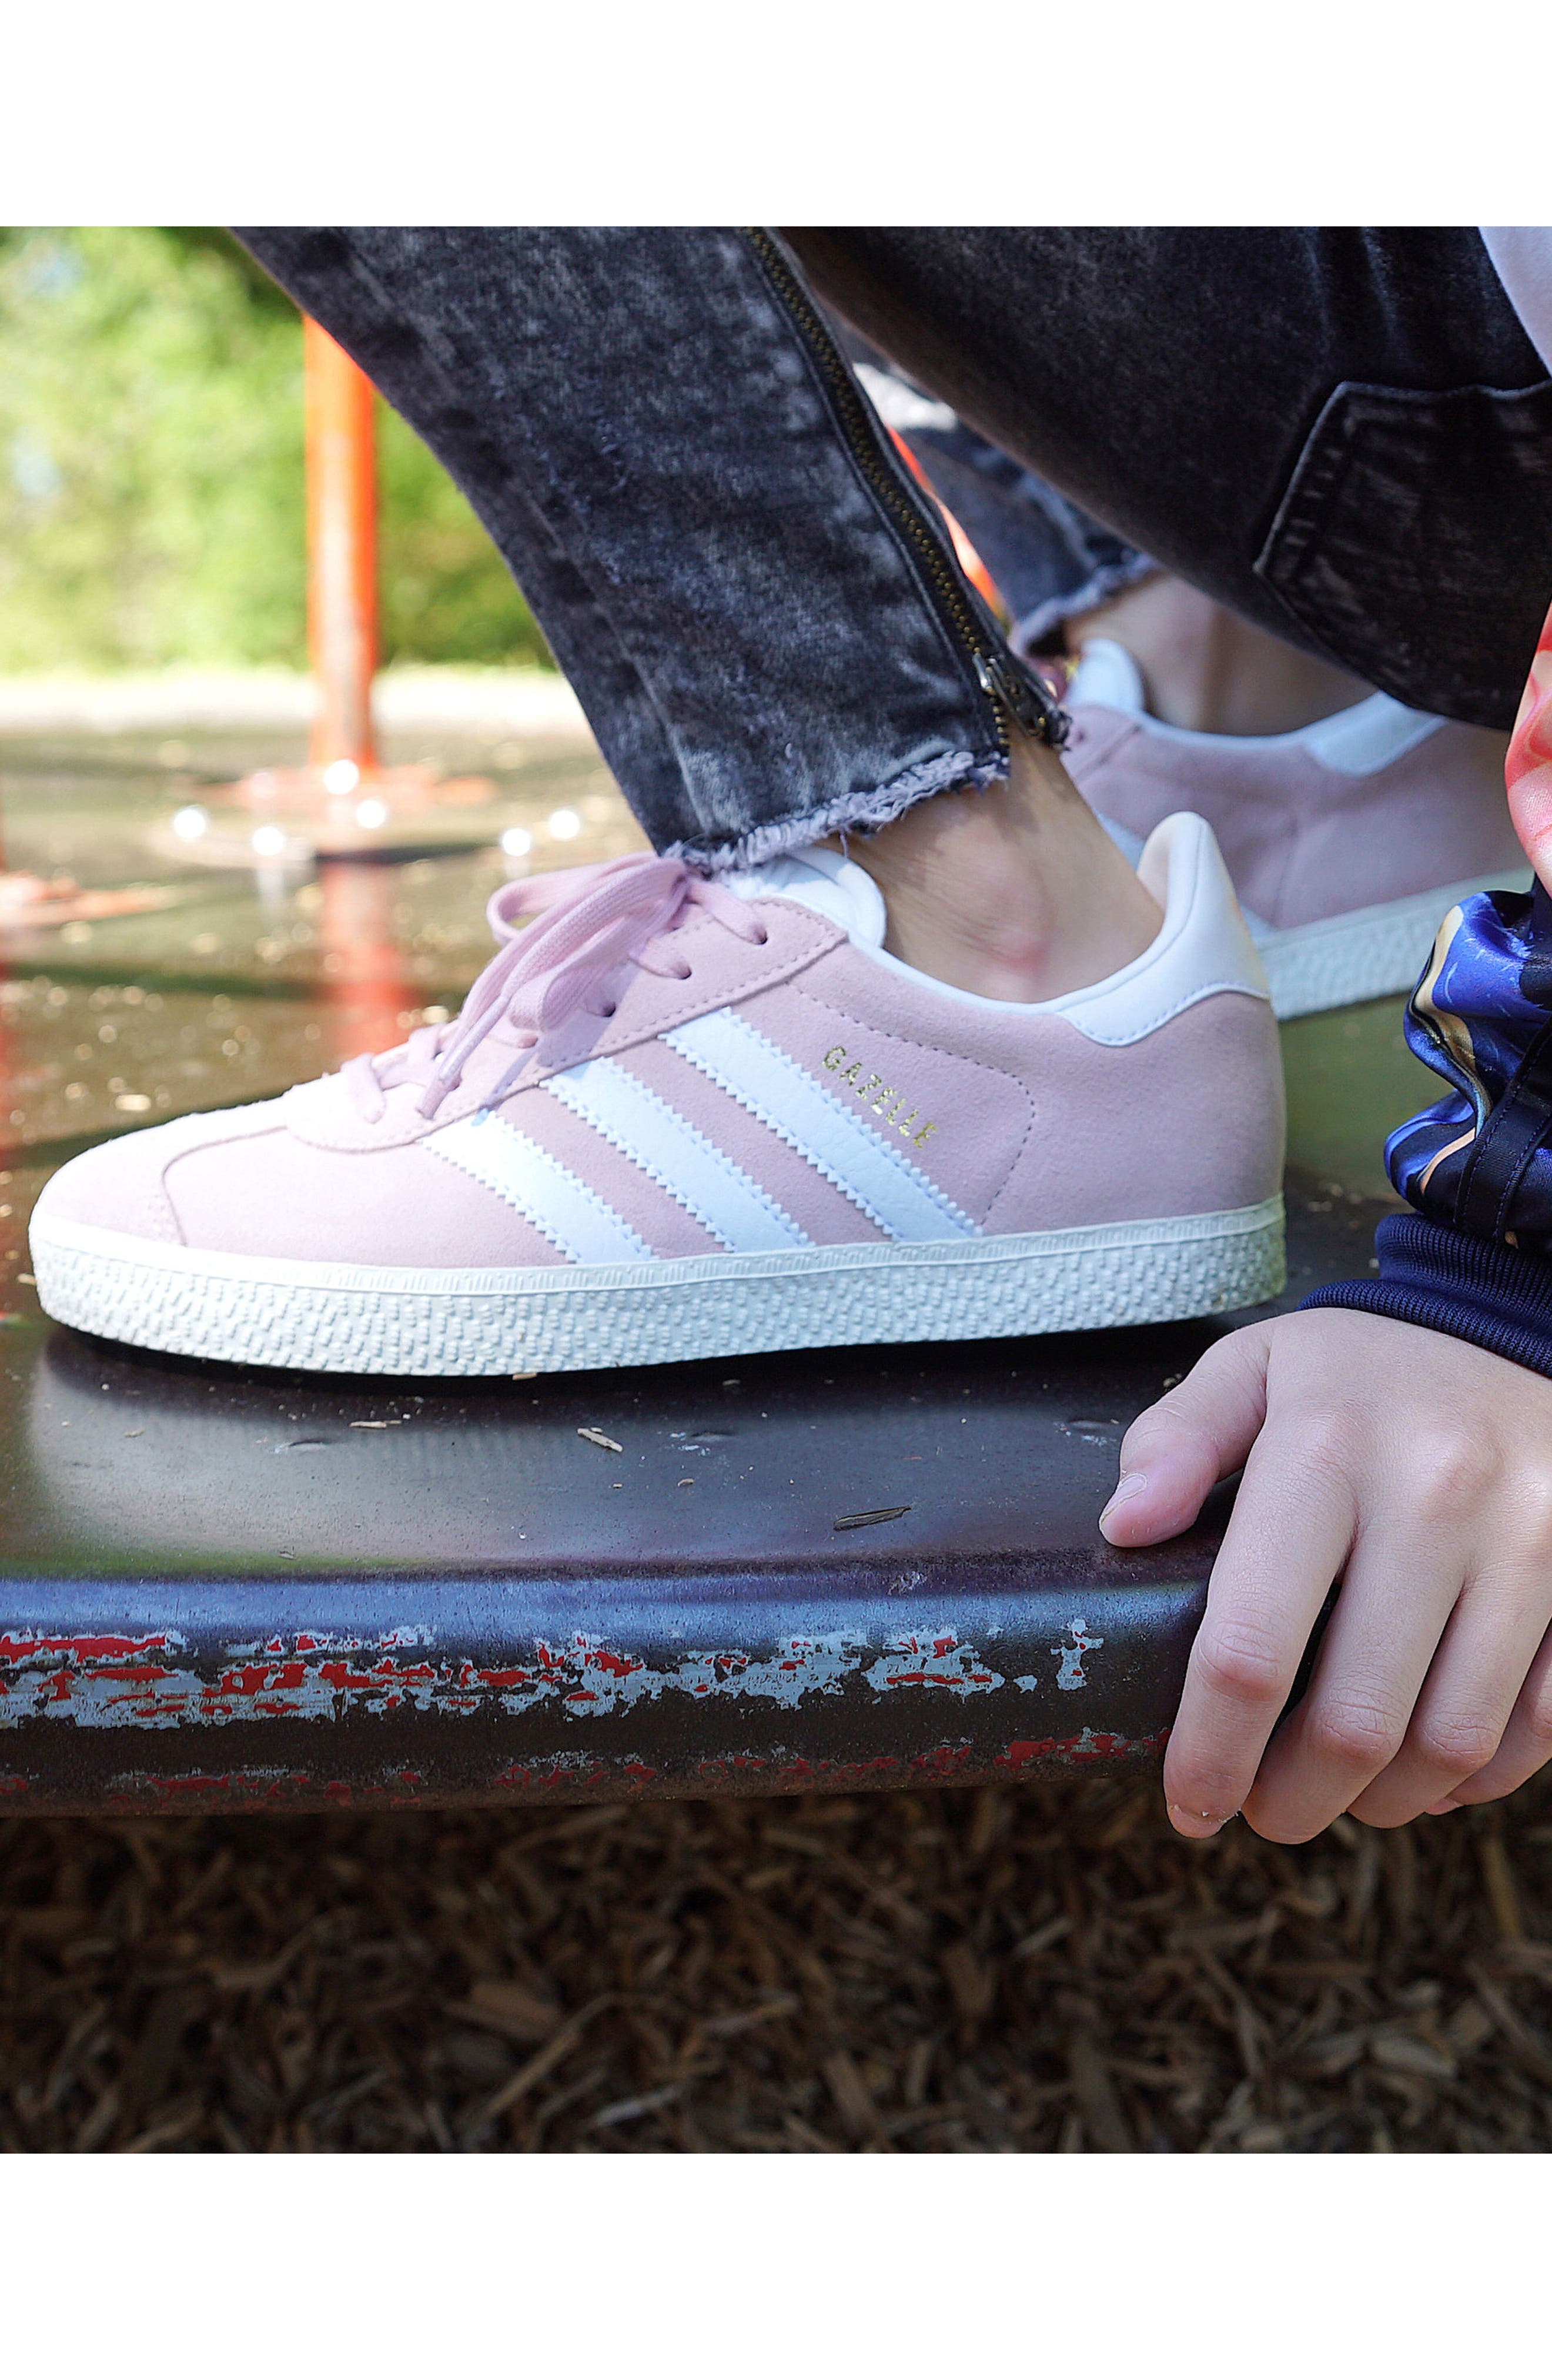 Gazelle Sneaker,                             Alternate thumbnail 8, color,                             Icy Pink/ White/ Gold